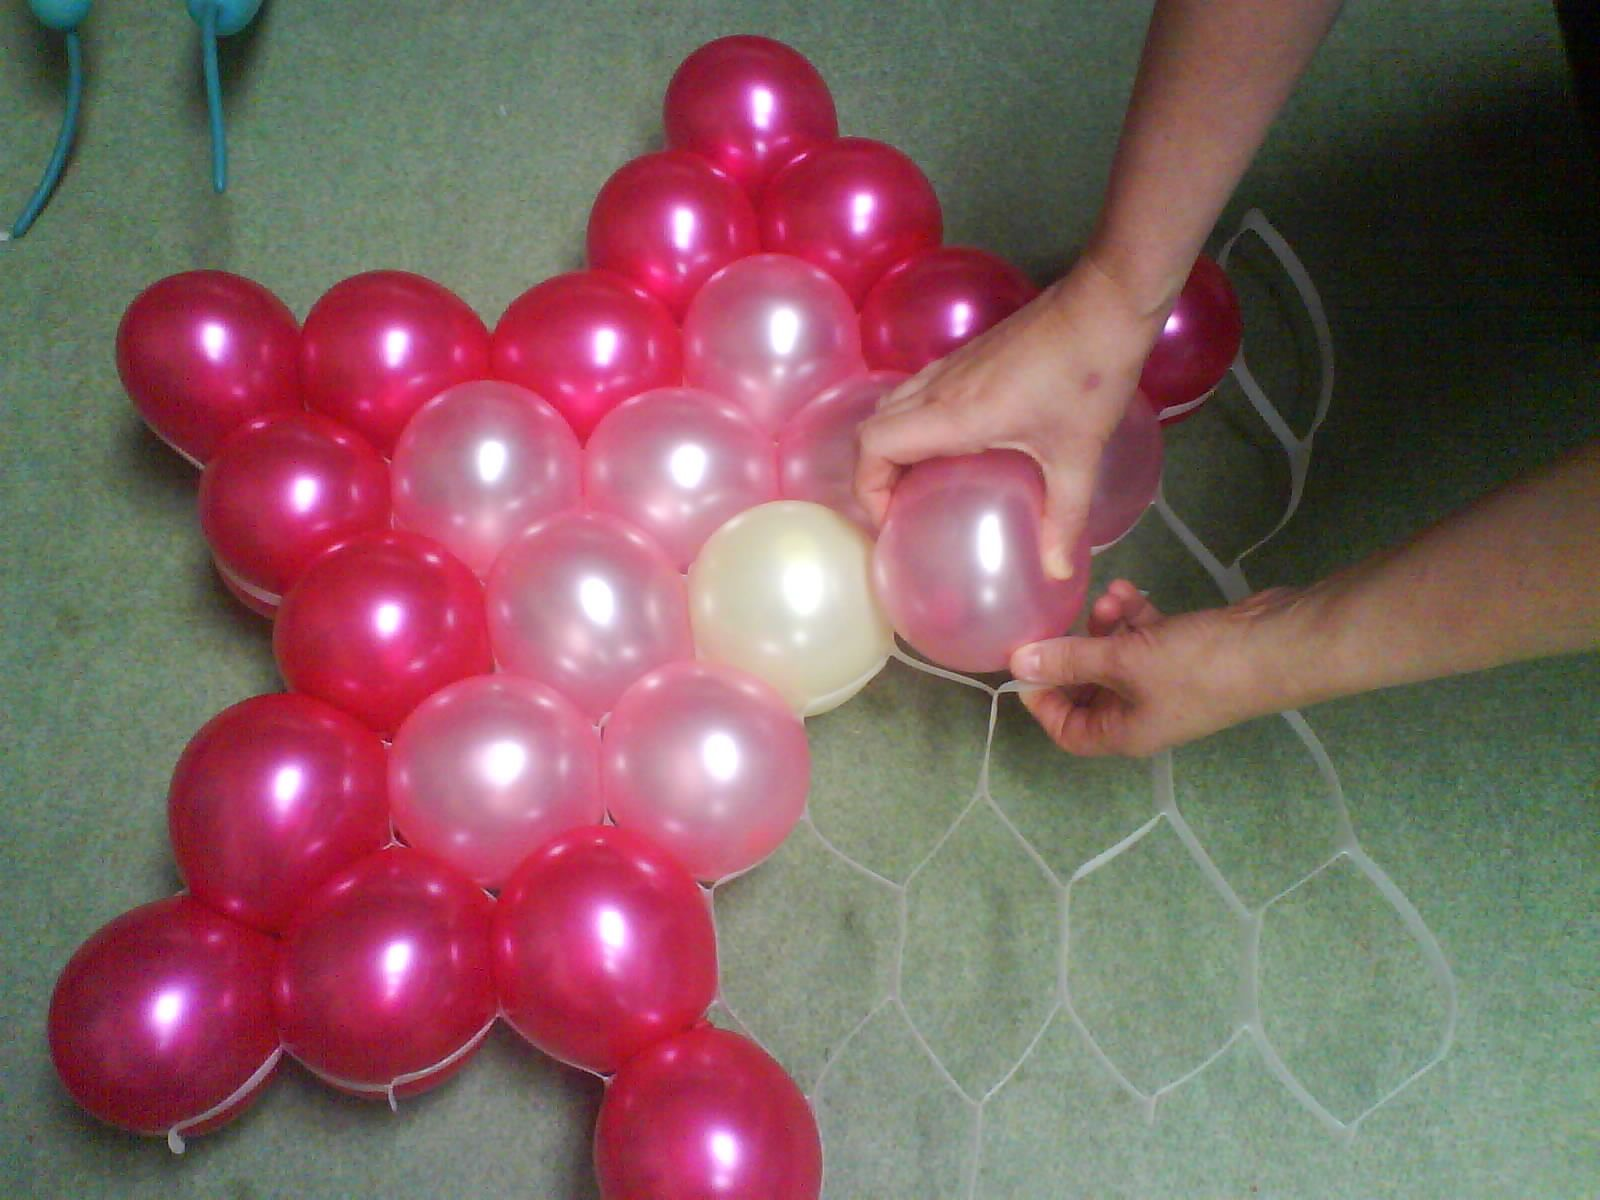 Balloon Decoration Ideas   Kids Kubby, This Is An Easy Yet Striking Balloon  Decoration Without